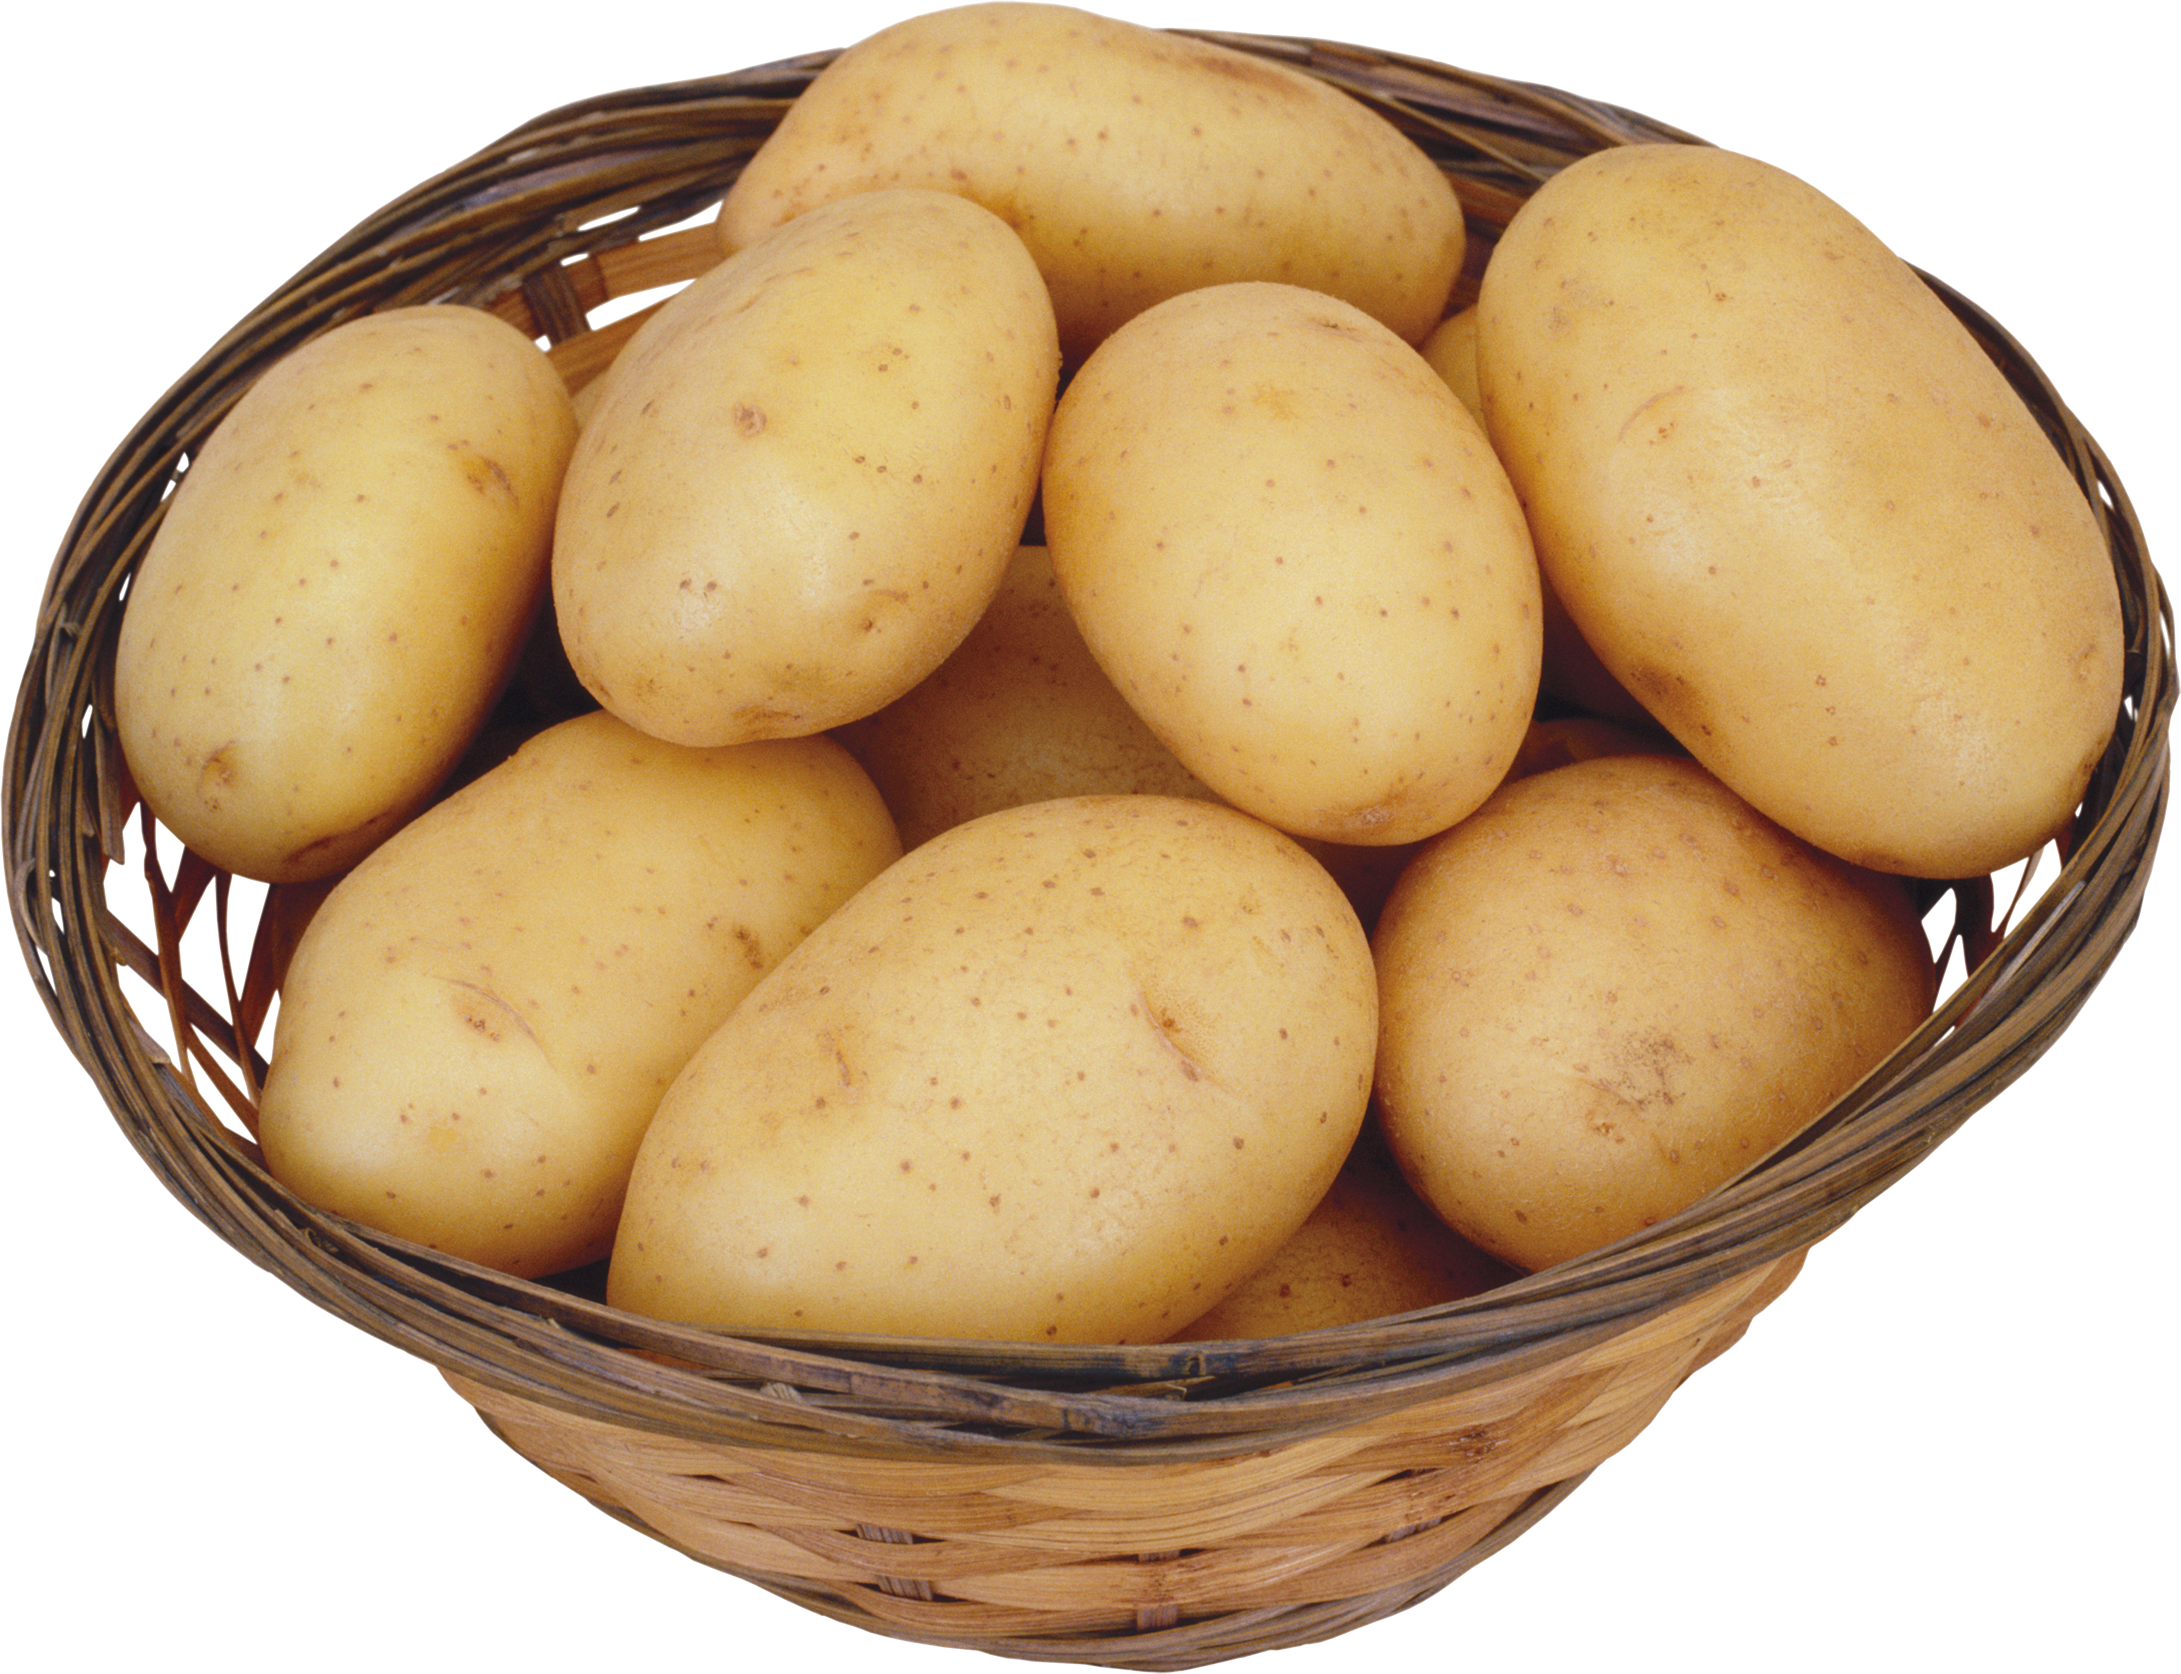 Potato Png Images Pictures Free Download   Potato Png Images